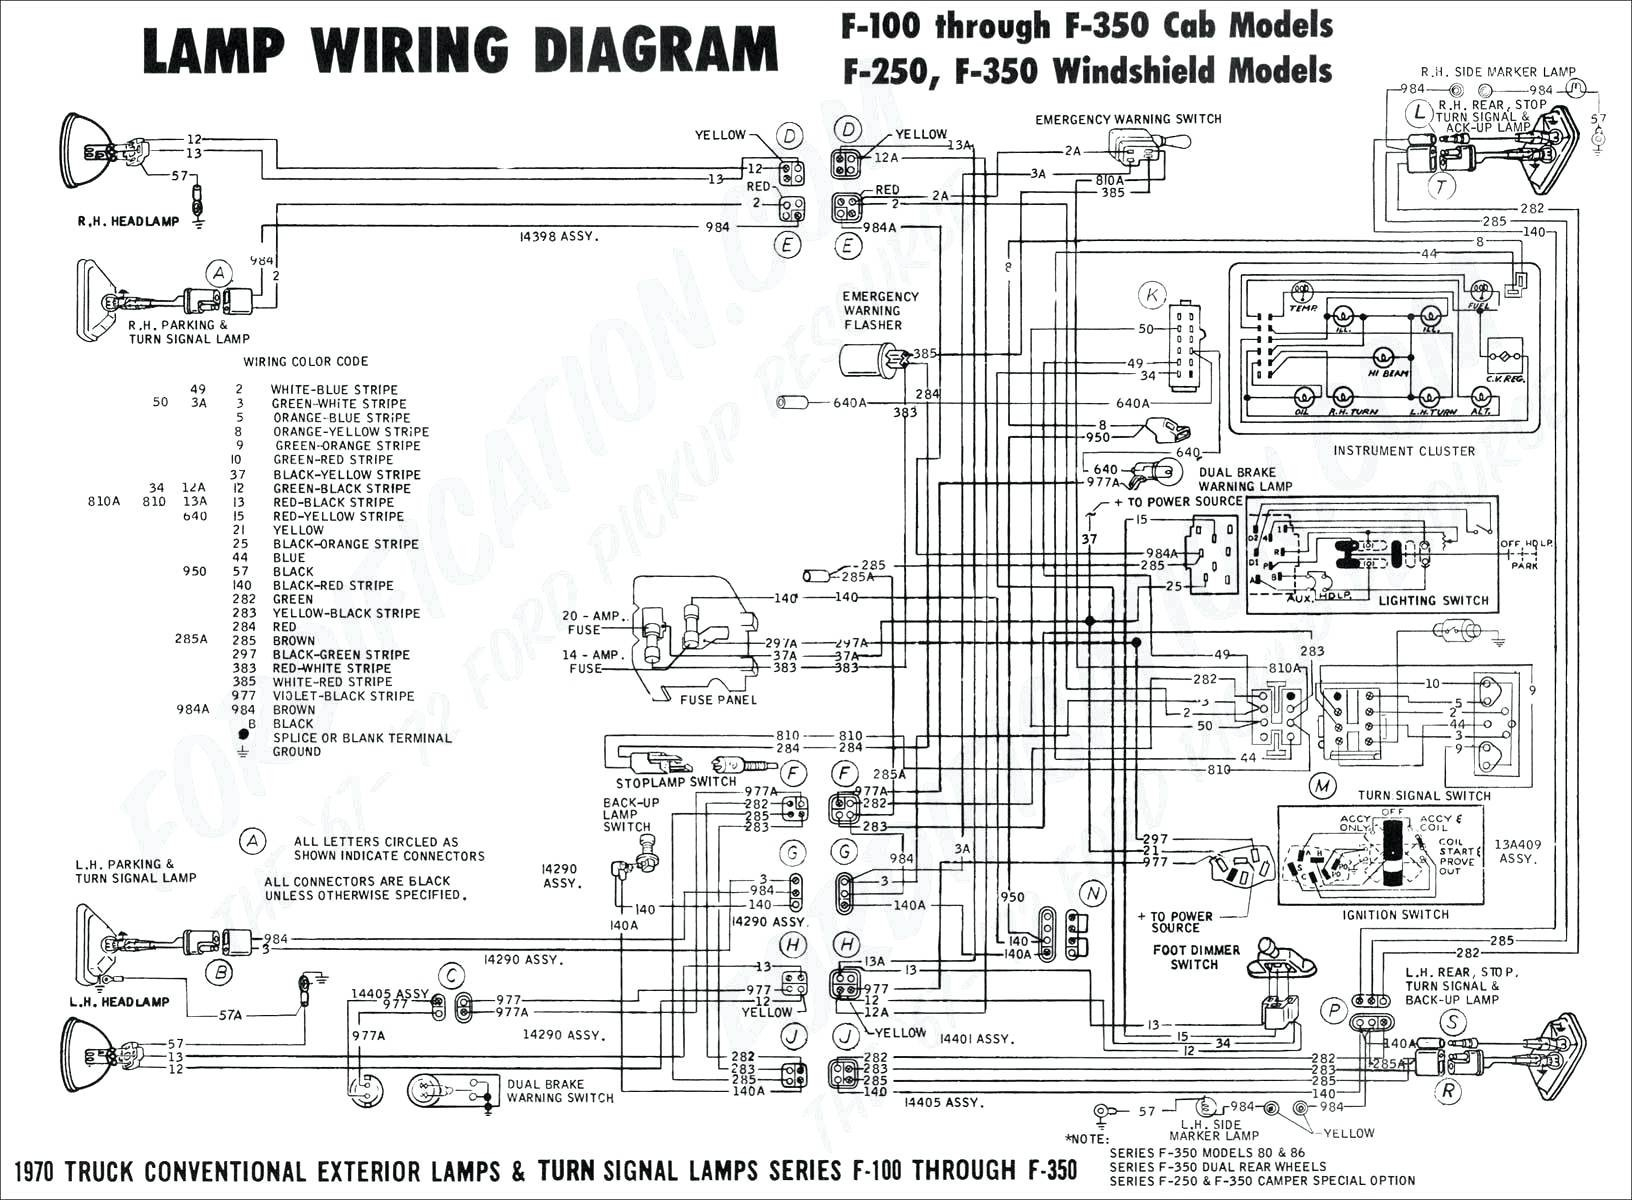 2015 Chevy Silverado Wiring Diagram